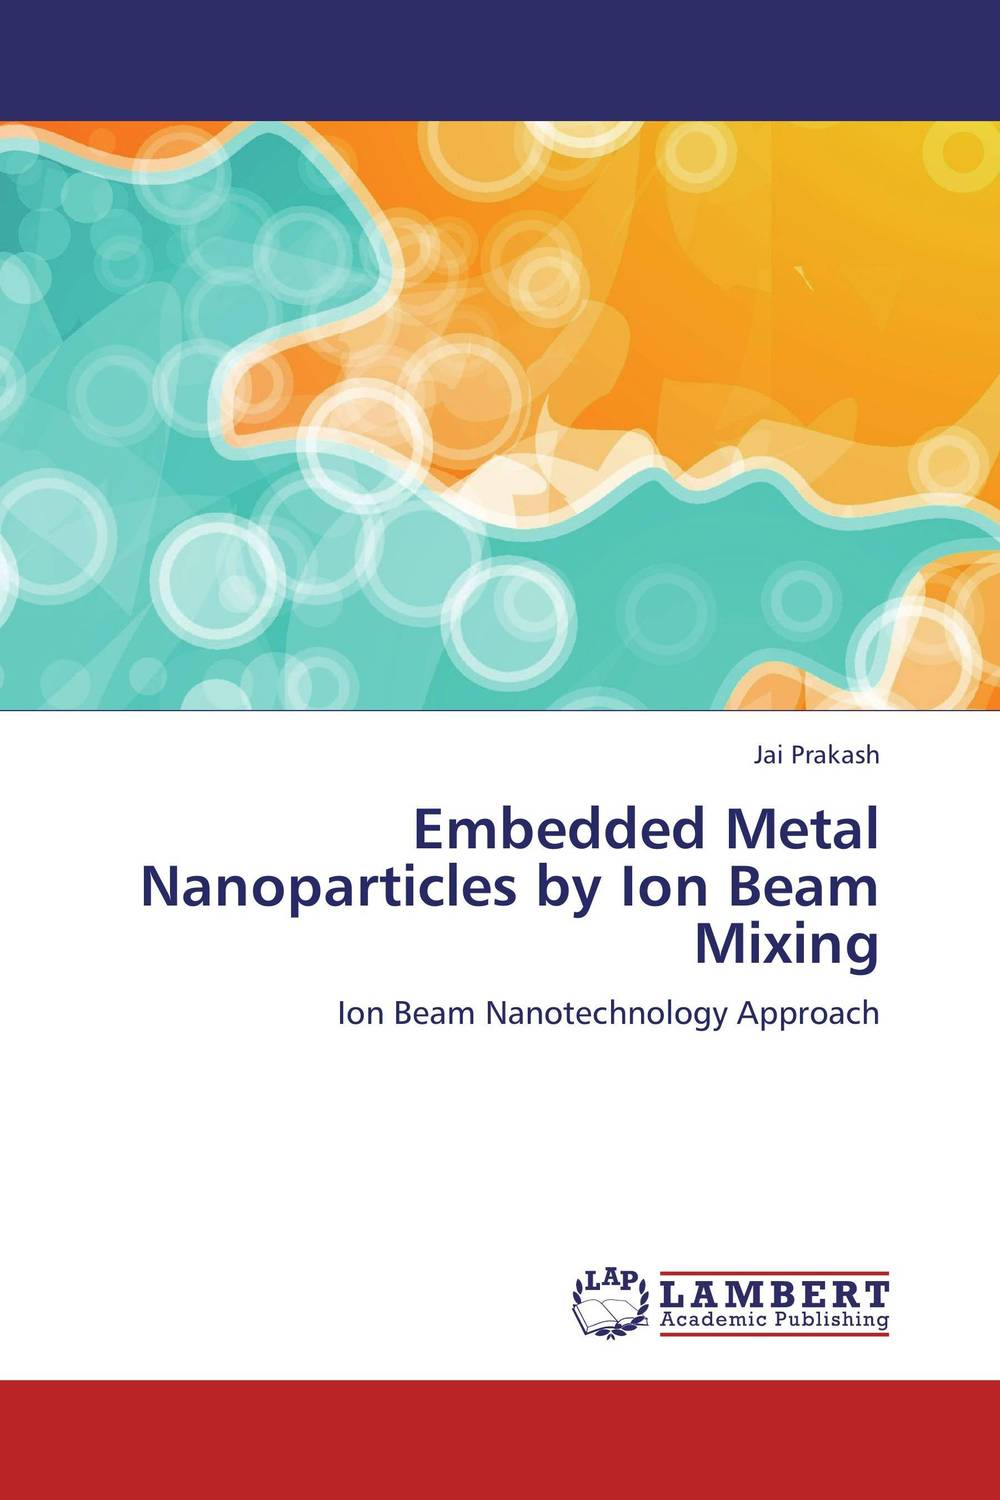 Embedded Metal Nanoparticles by Ion Beam Mixing jai prakash embedded metal nanoparticles by ion beam mixing